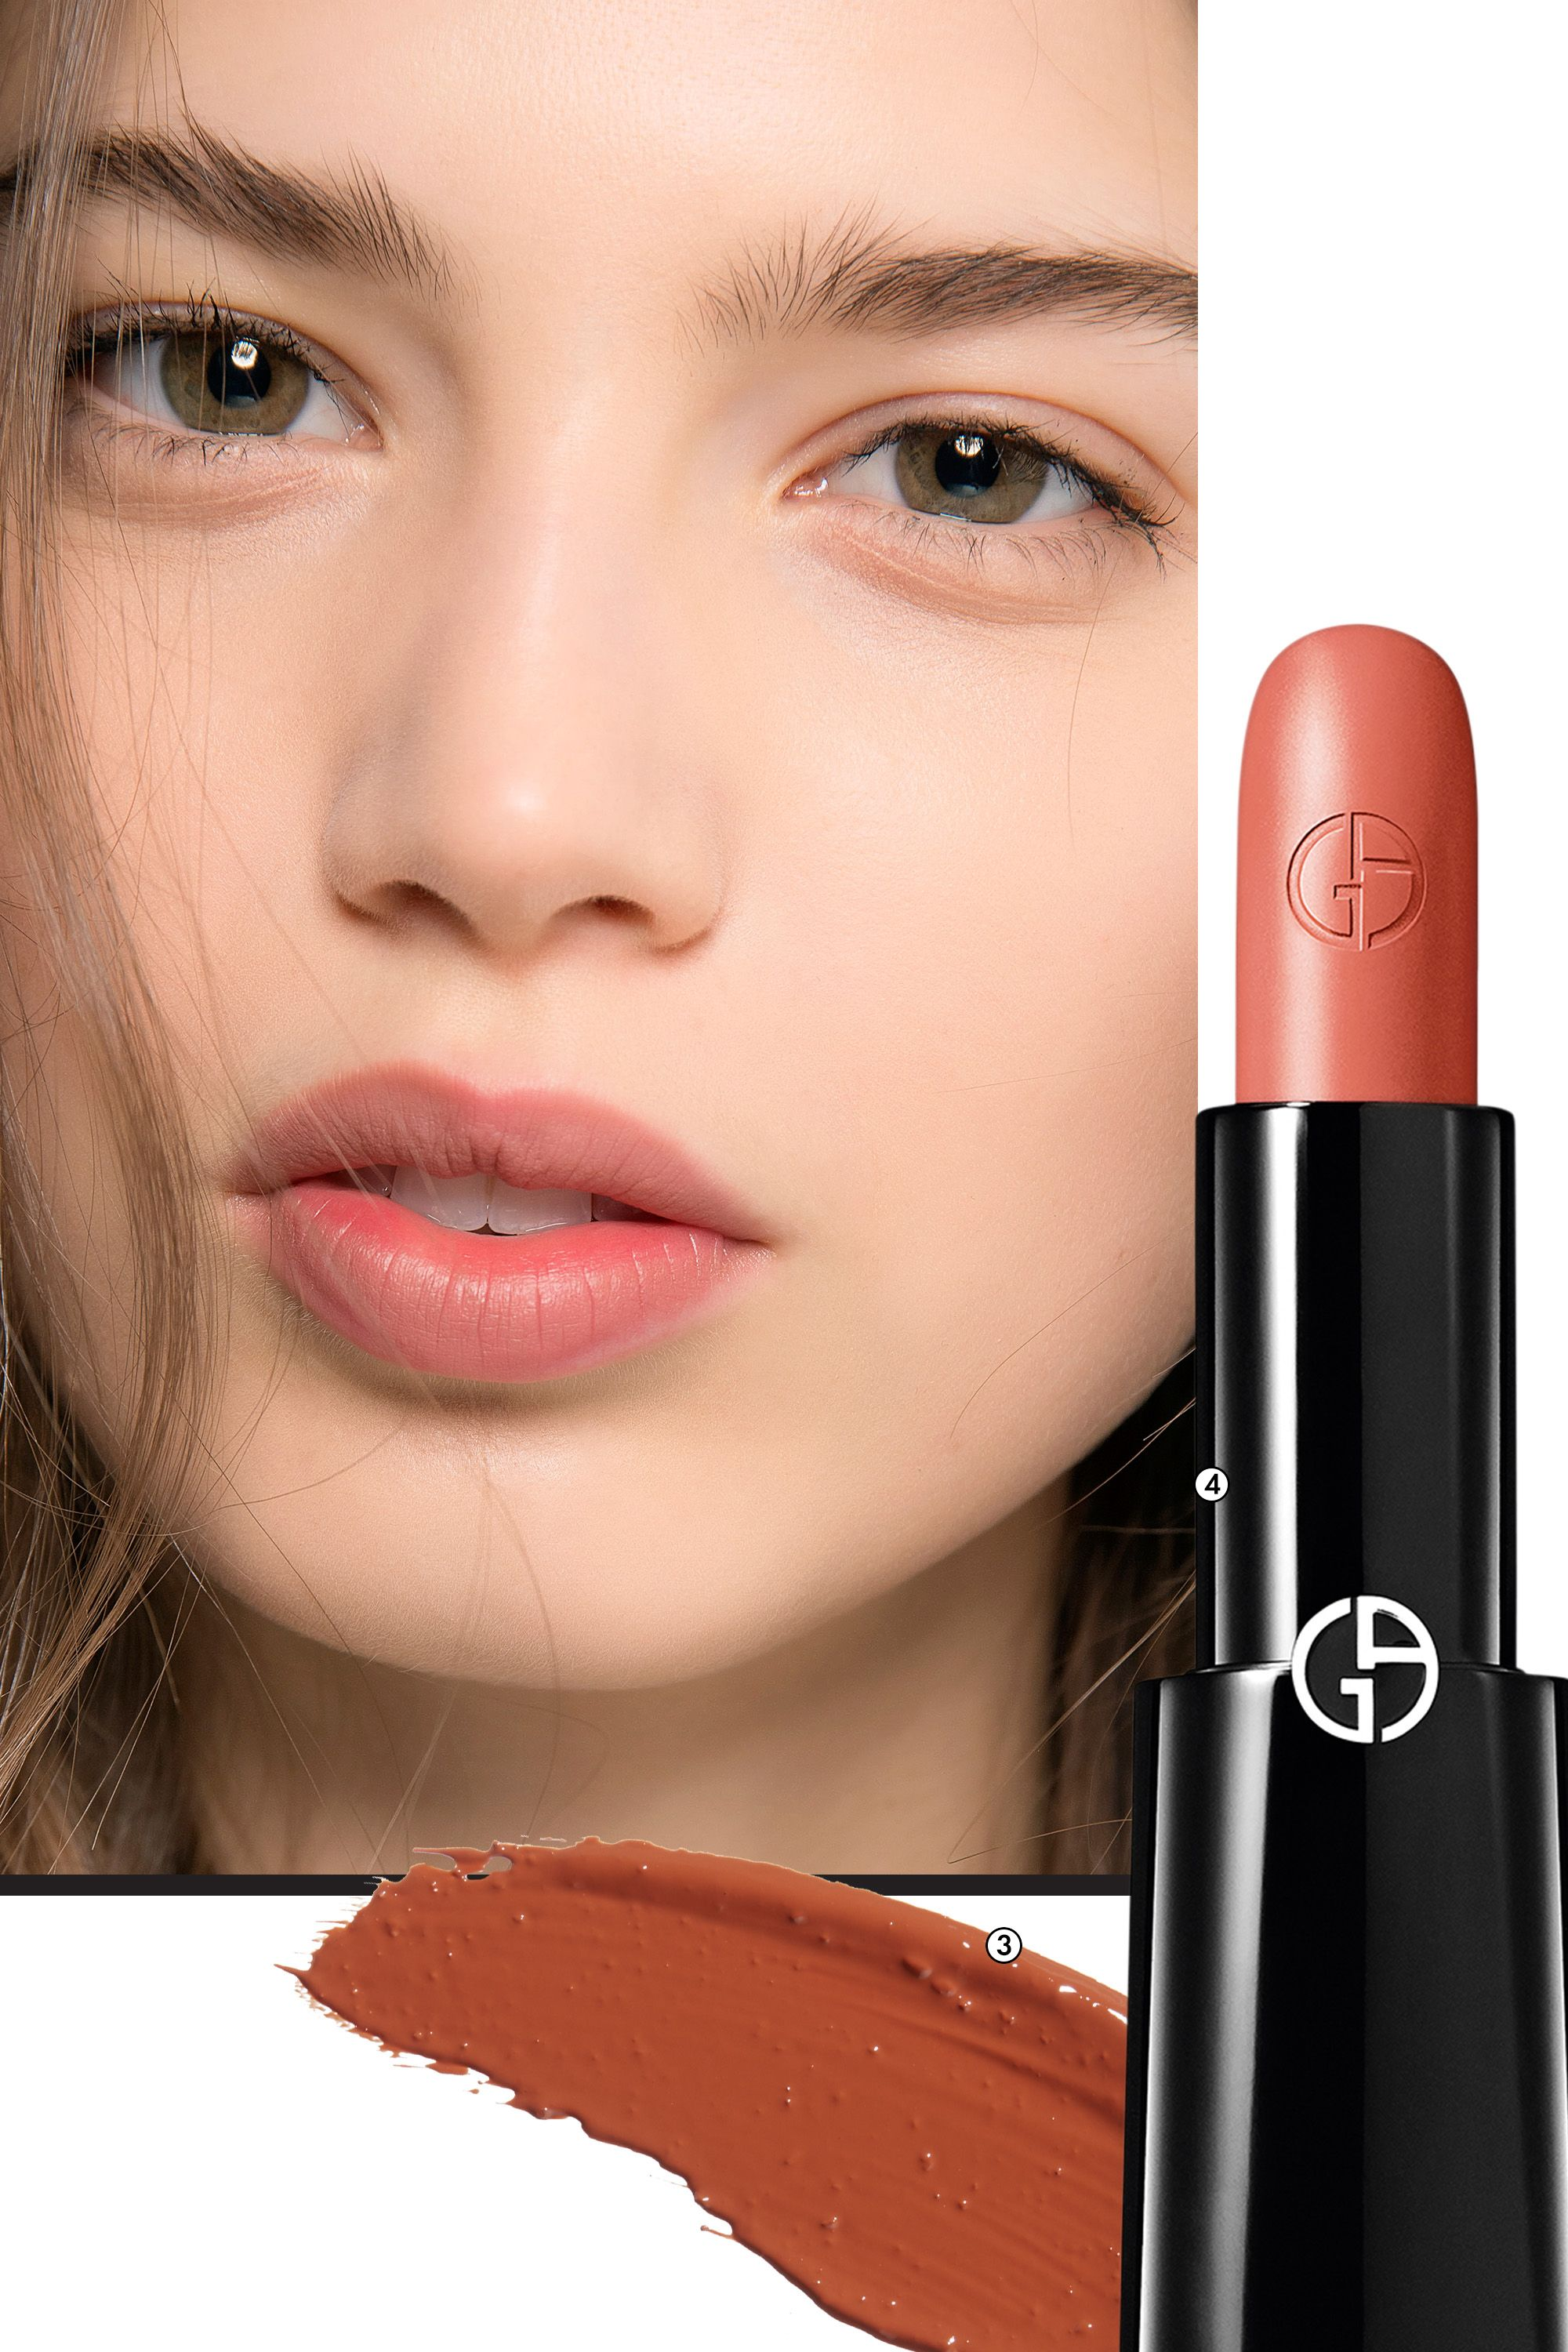 "<p>The Alexis Mabille show—in which models' mouths were shaded an intriguing brownish red, the unofficial lipstick color of the '90s—was basically one giant shout-out to the Nirvana era. For fair skin, makeup artist Lloyd Simmonds, using M.A.C Trend Forecast Fall 2017 lip palette (3), mixed a ""true beige"" with a hint of ""dusky rose."" To prevent beige undertones from skewing gray on darker complexions, Simmonds advises mixing a rose hue (we like Giorgio Armani Rouge d'Armani Lipstick in Bamboo (4)) with a raspberry shade.<span data-redactor-tag=""span"" data-verified=""redactor""></span></p><p>MAKE WAVES: <em data-redactor-tag=""em"">Blast hair with a tousle- accentuating finishing spray, such as Redken Wind Blown, before curling or weaving a (mussed) braid.</em></p>"